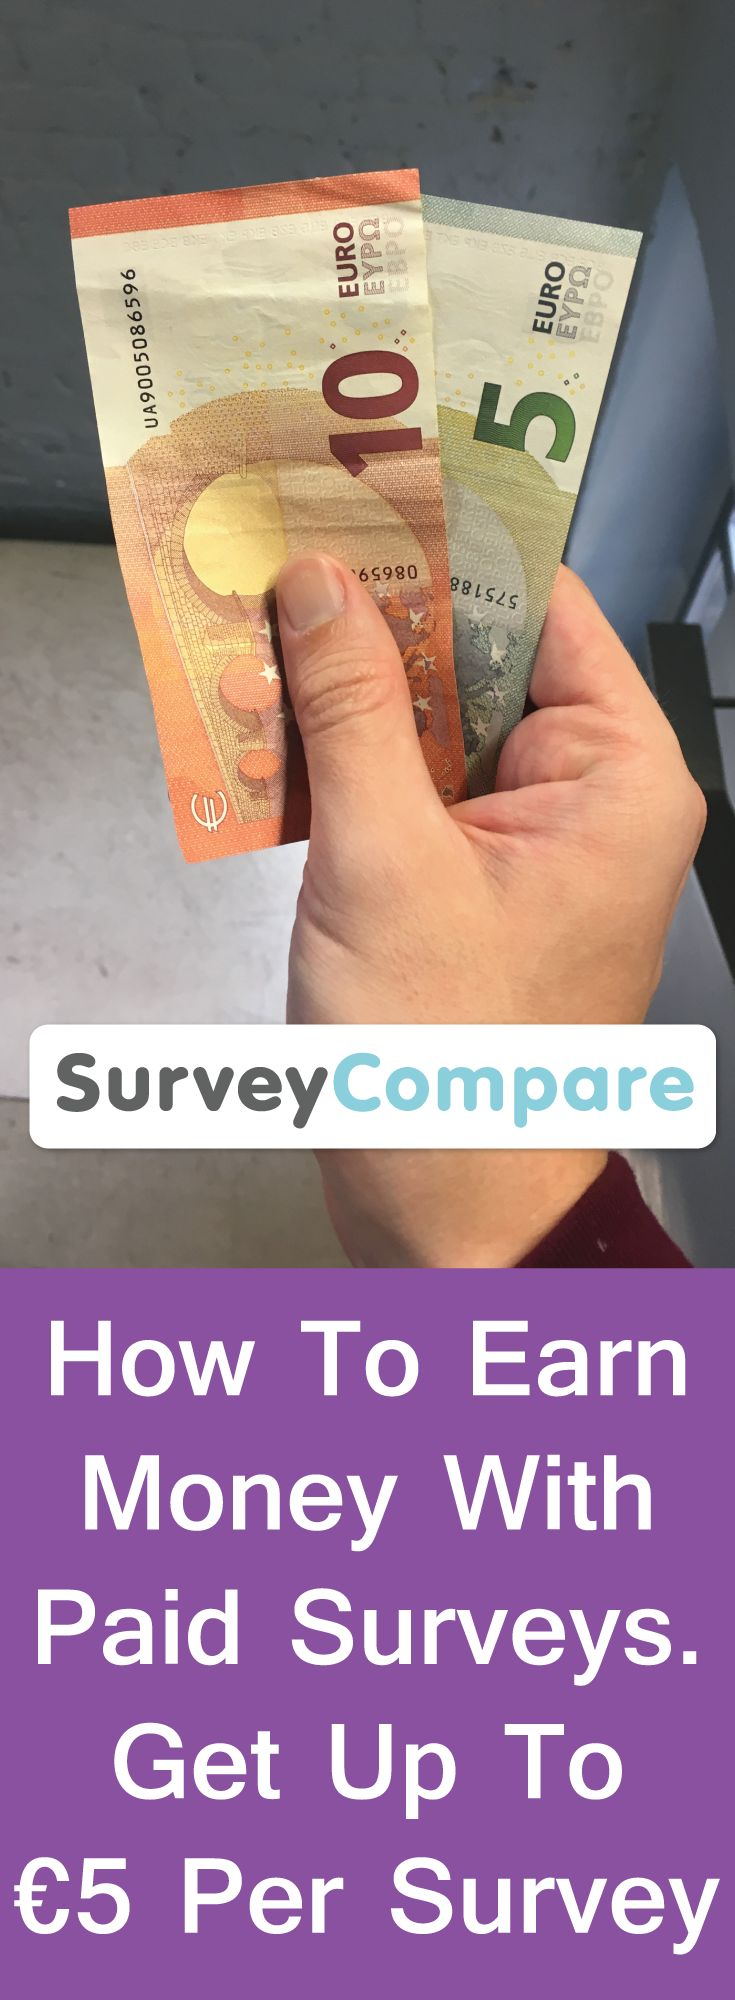 The amount of money you can earn